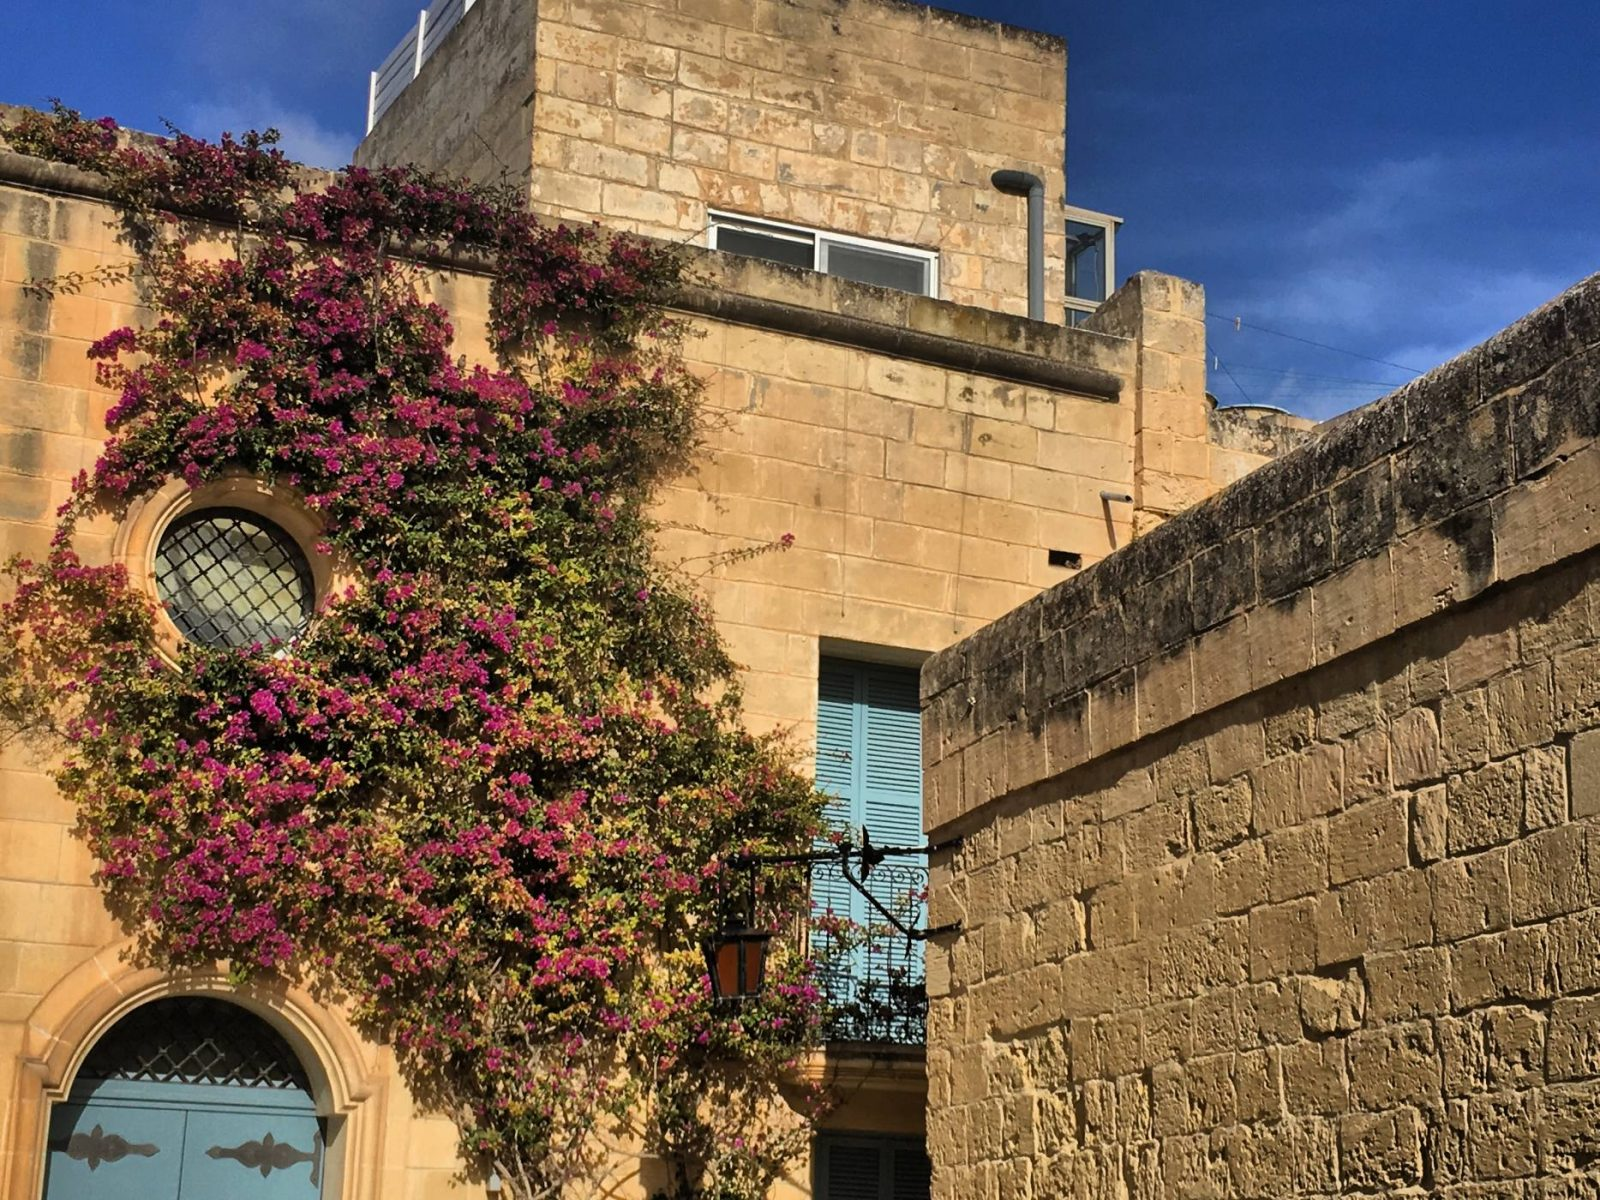 A pretty overgrown building in Mdina